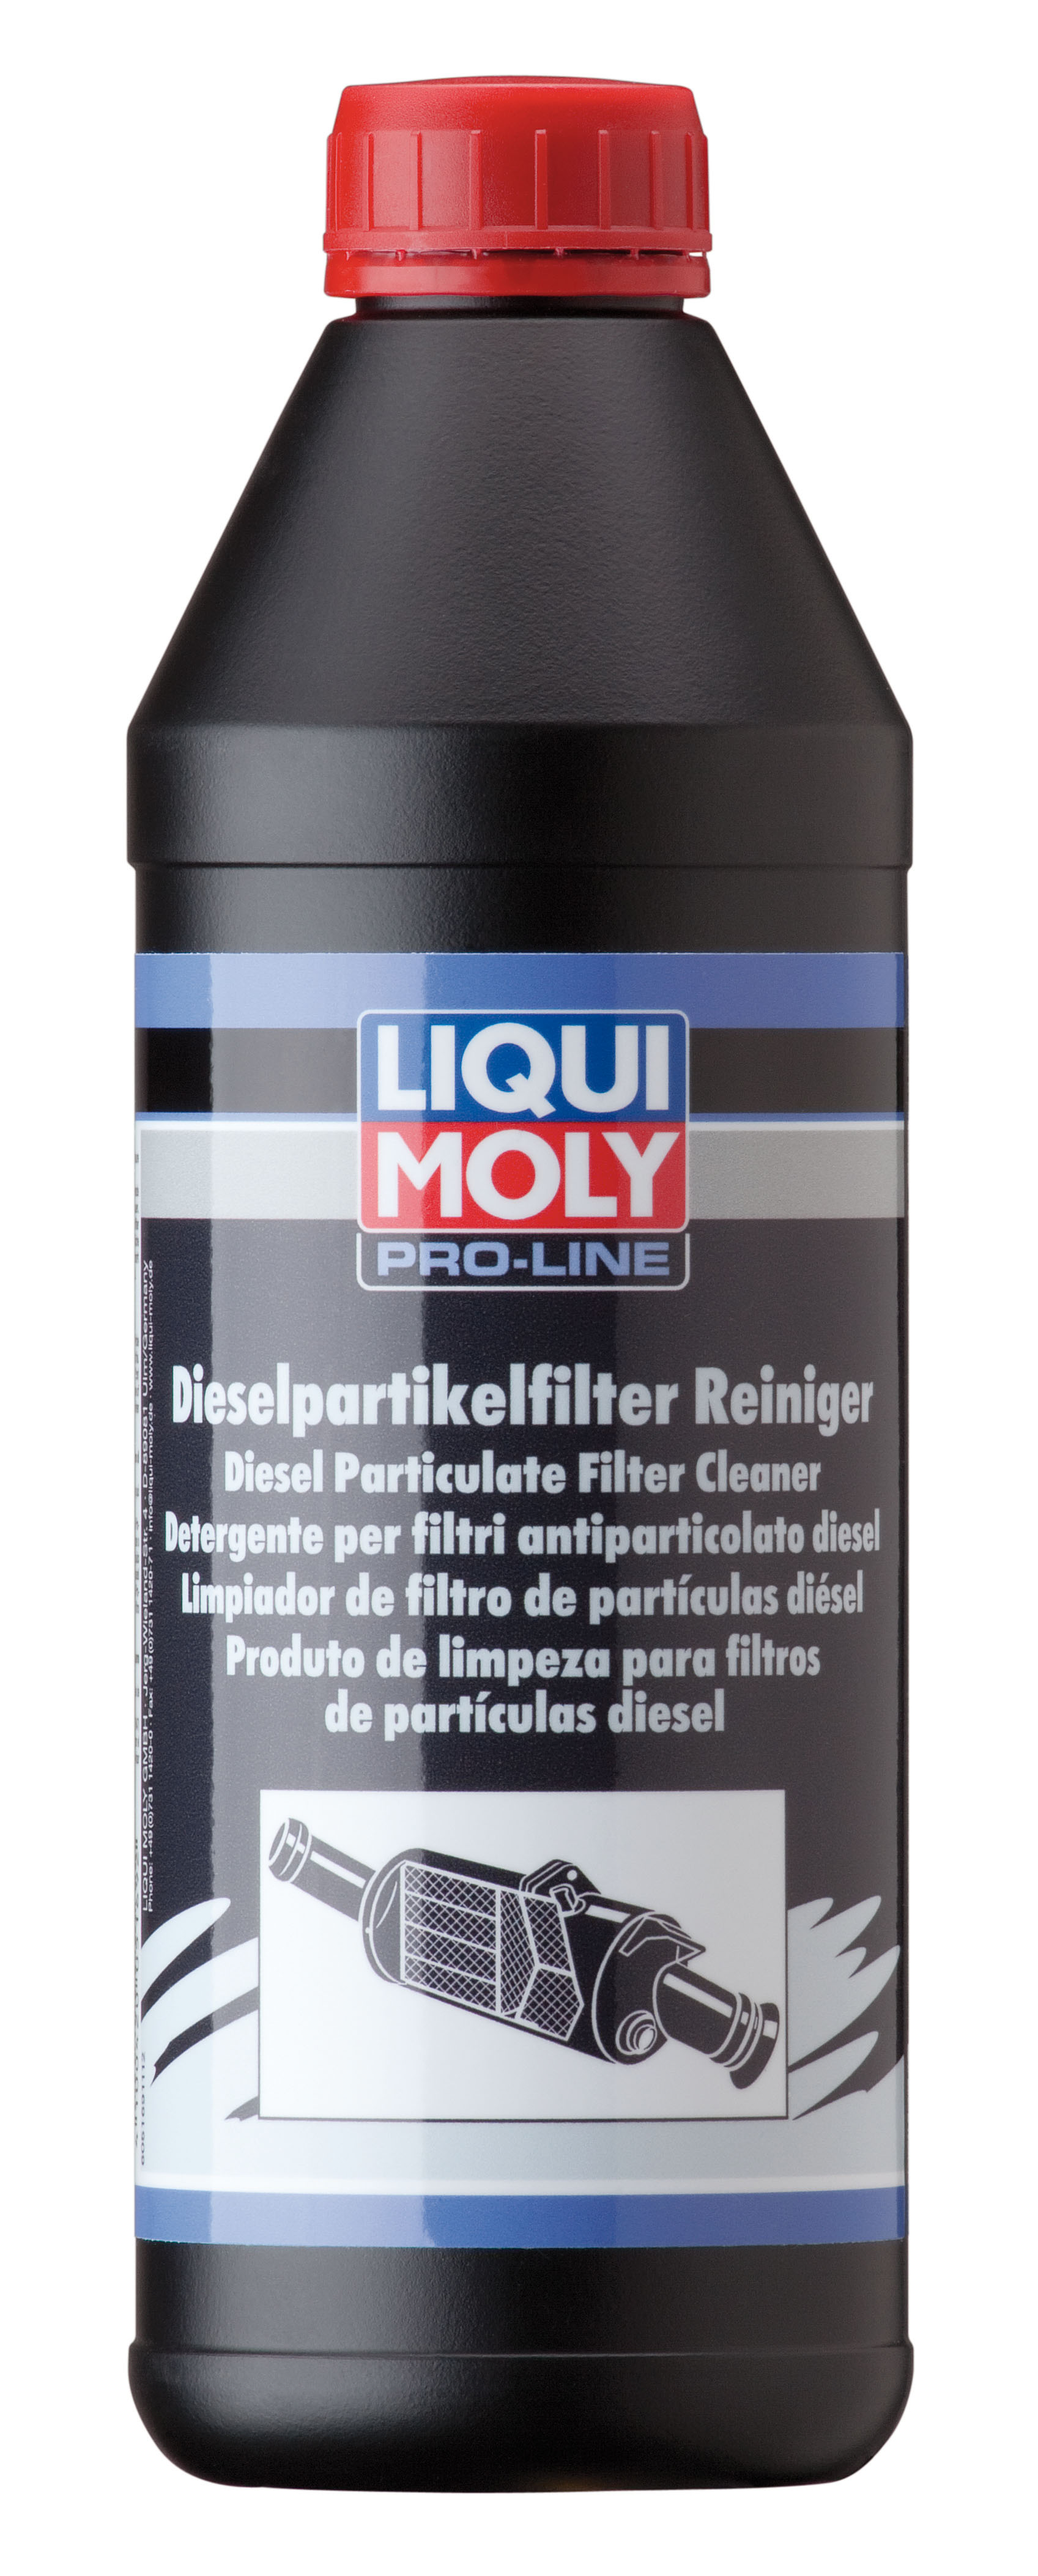 ADITIV CARBURANT PARTICULATE FILTER CLEANER LIQUI MOLY 5169 1L